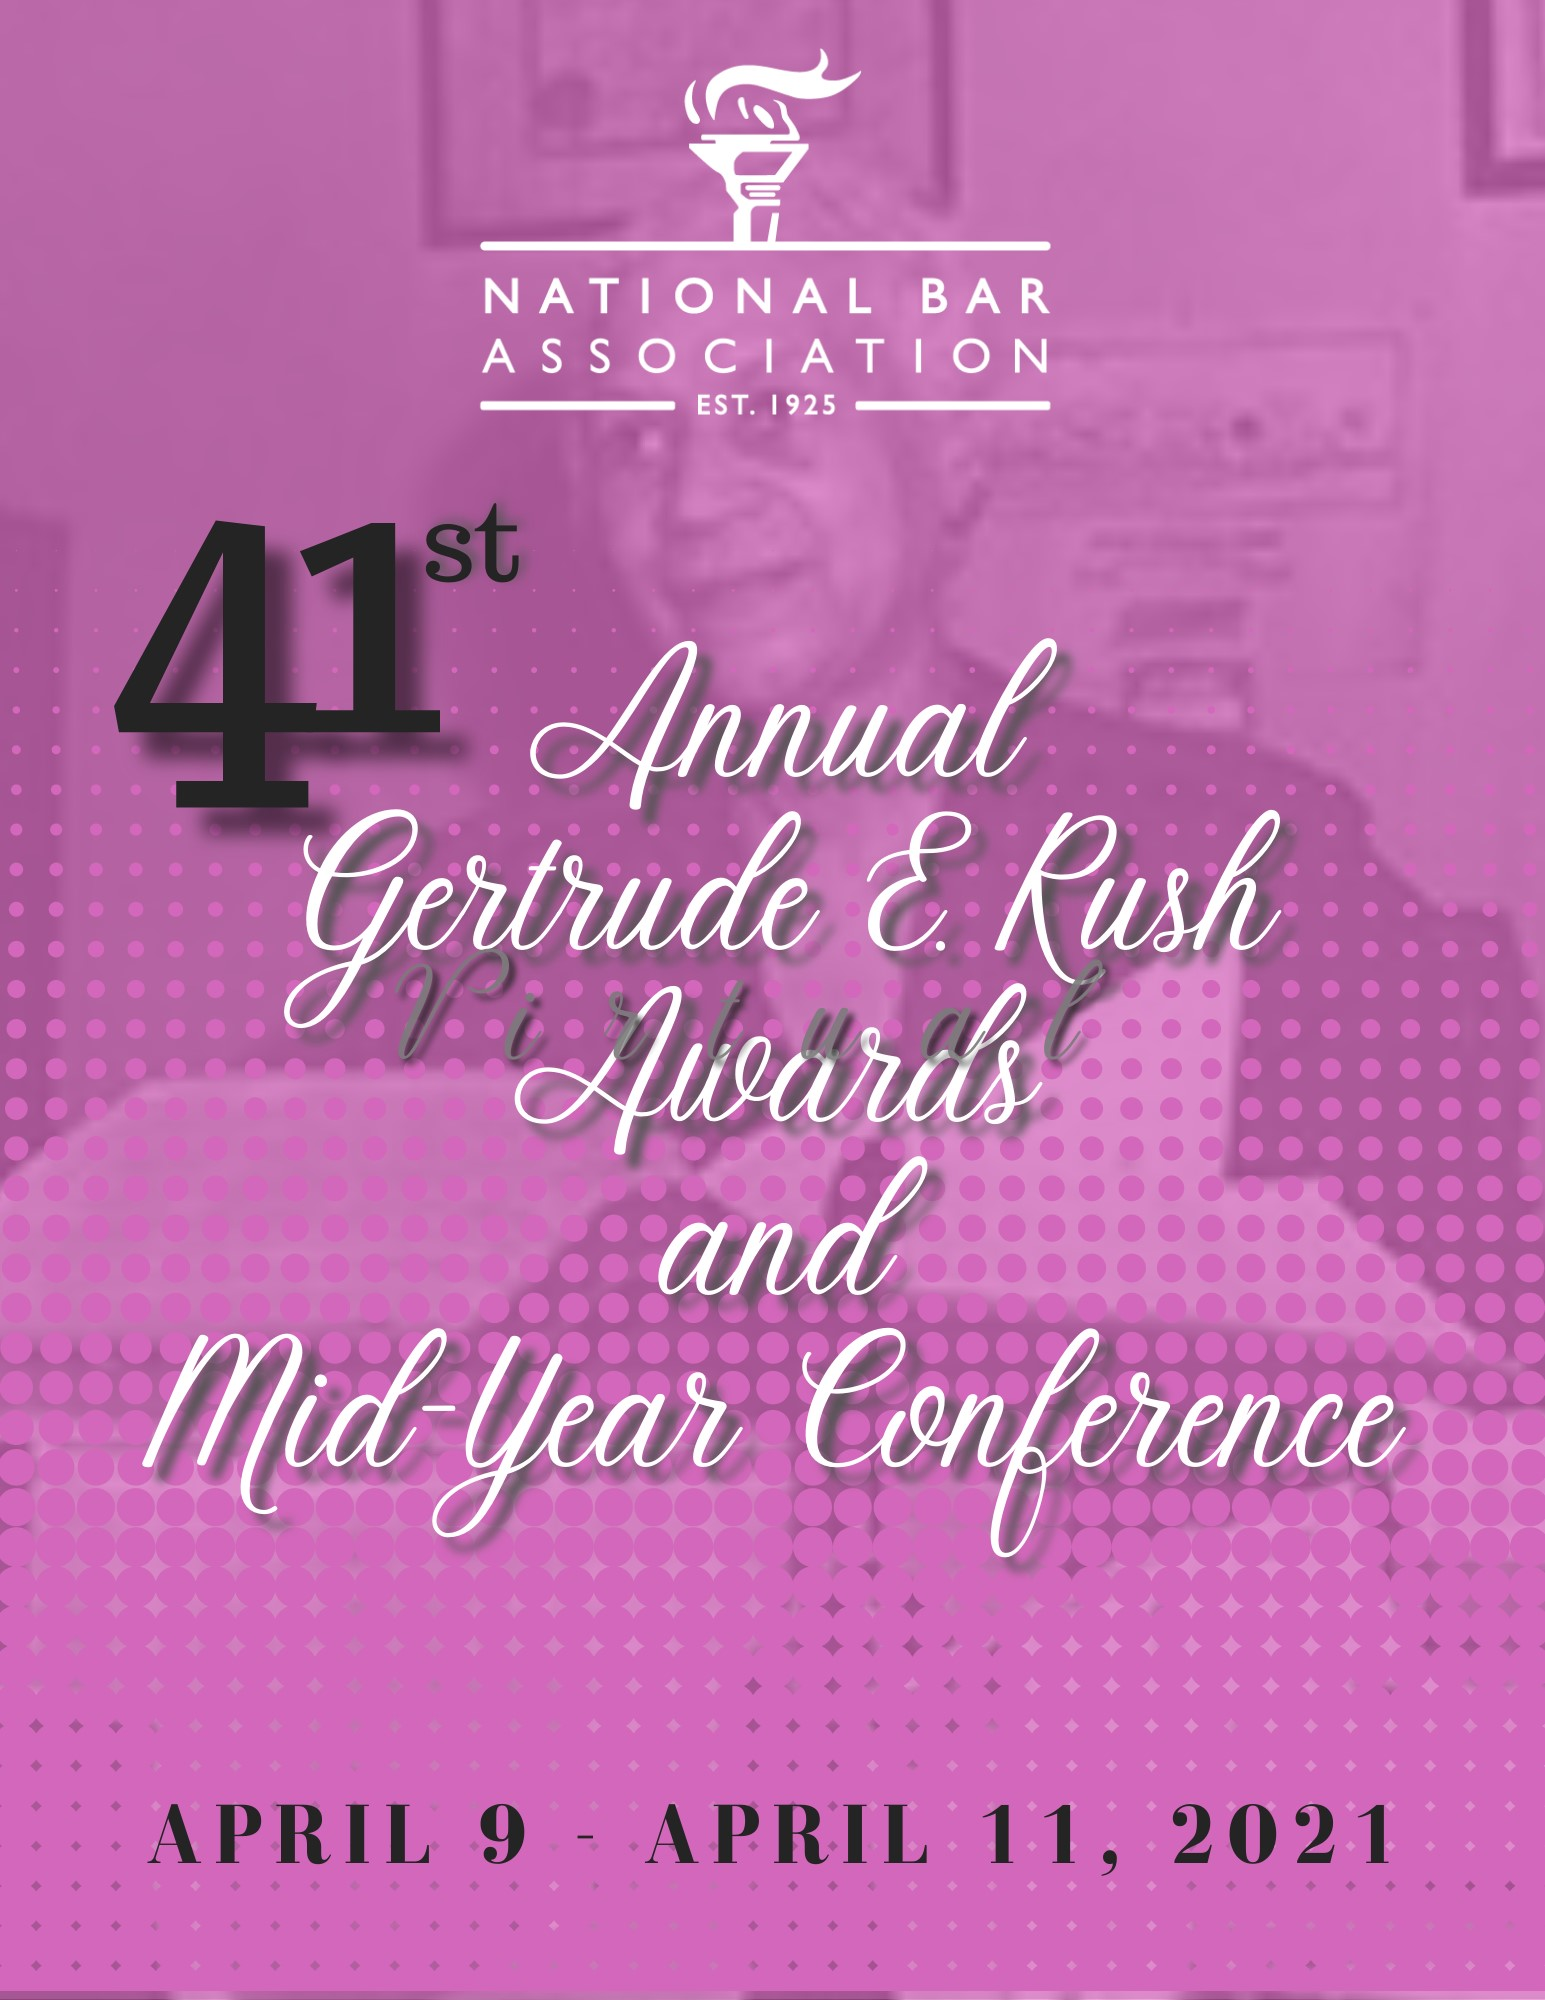 41st Annual Gertrude E. Rush Awards and Mid-Year Virtual Con